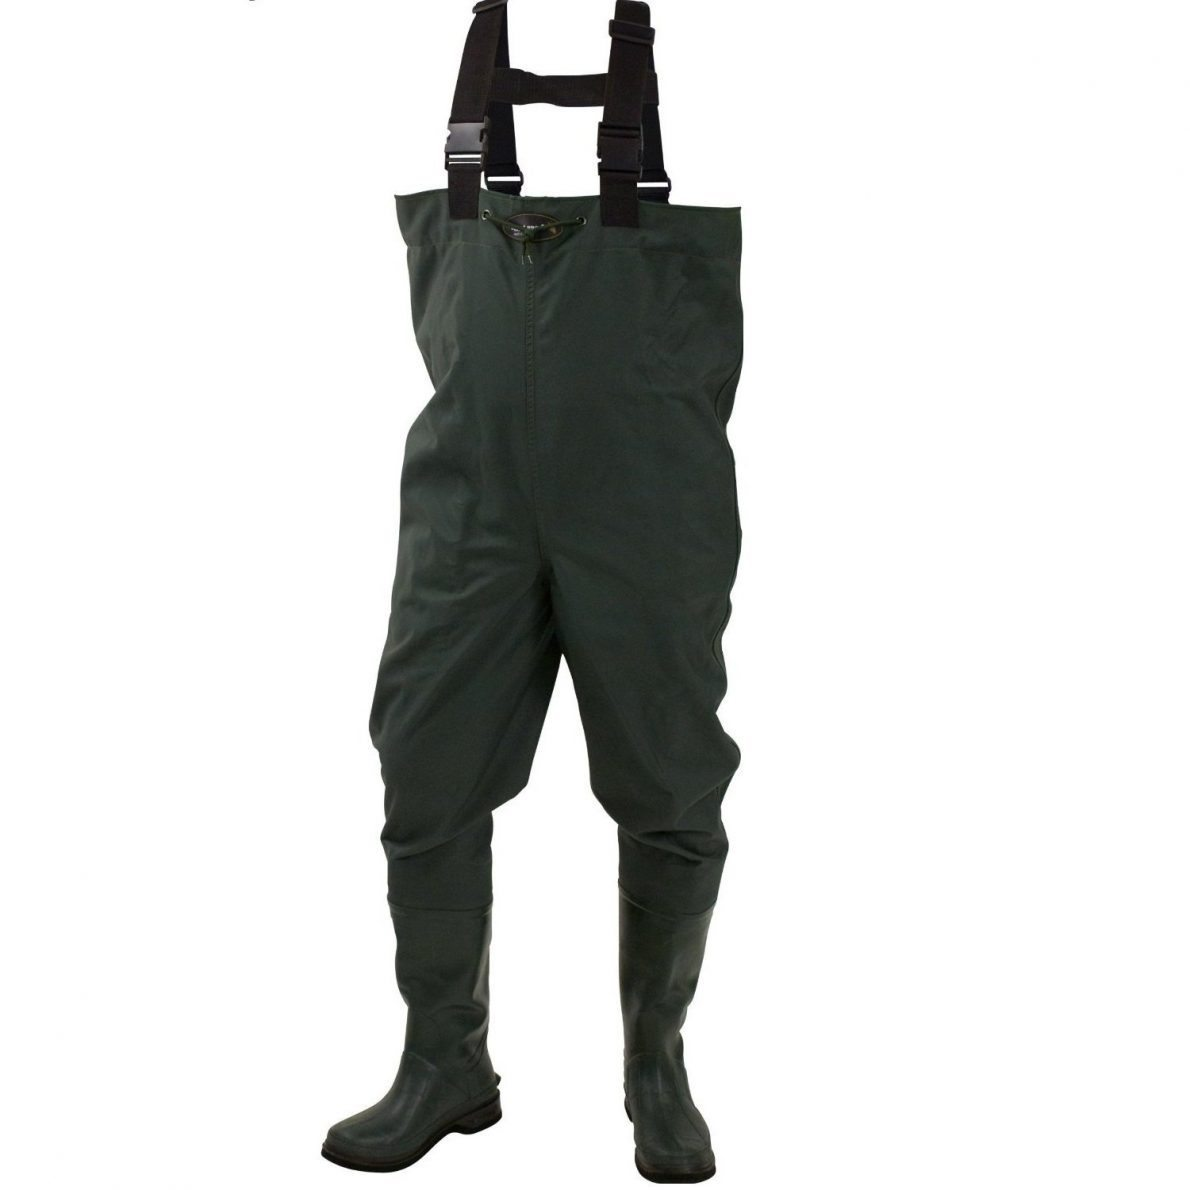 Frogg Toggs Cascades 2-Ply Rubber Bootfoot Cleated Chest Wader Review